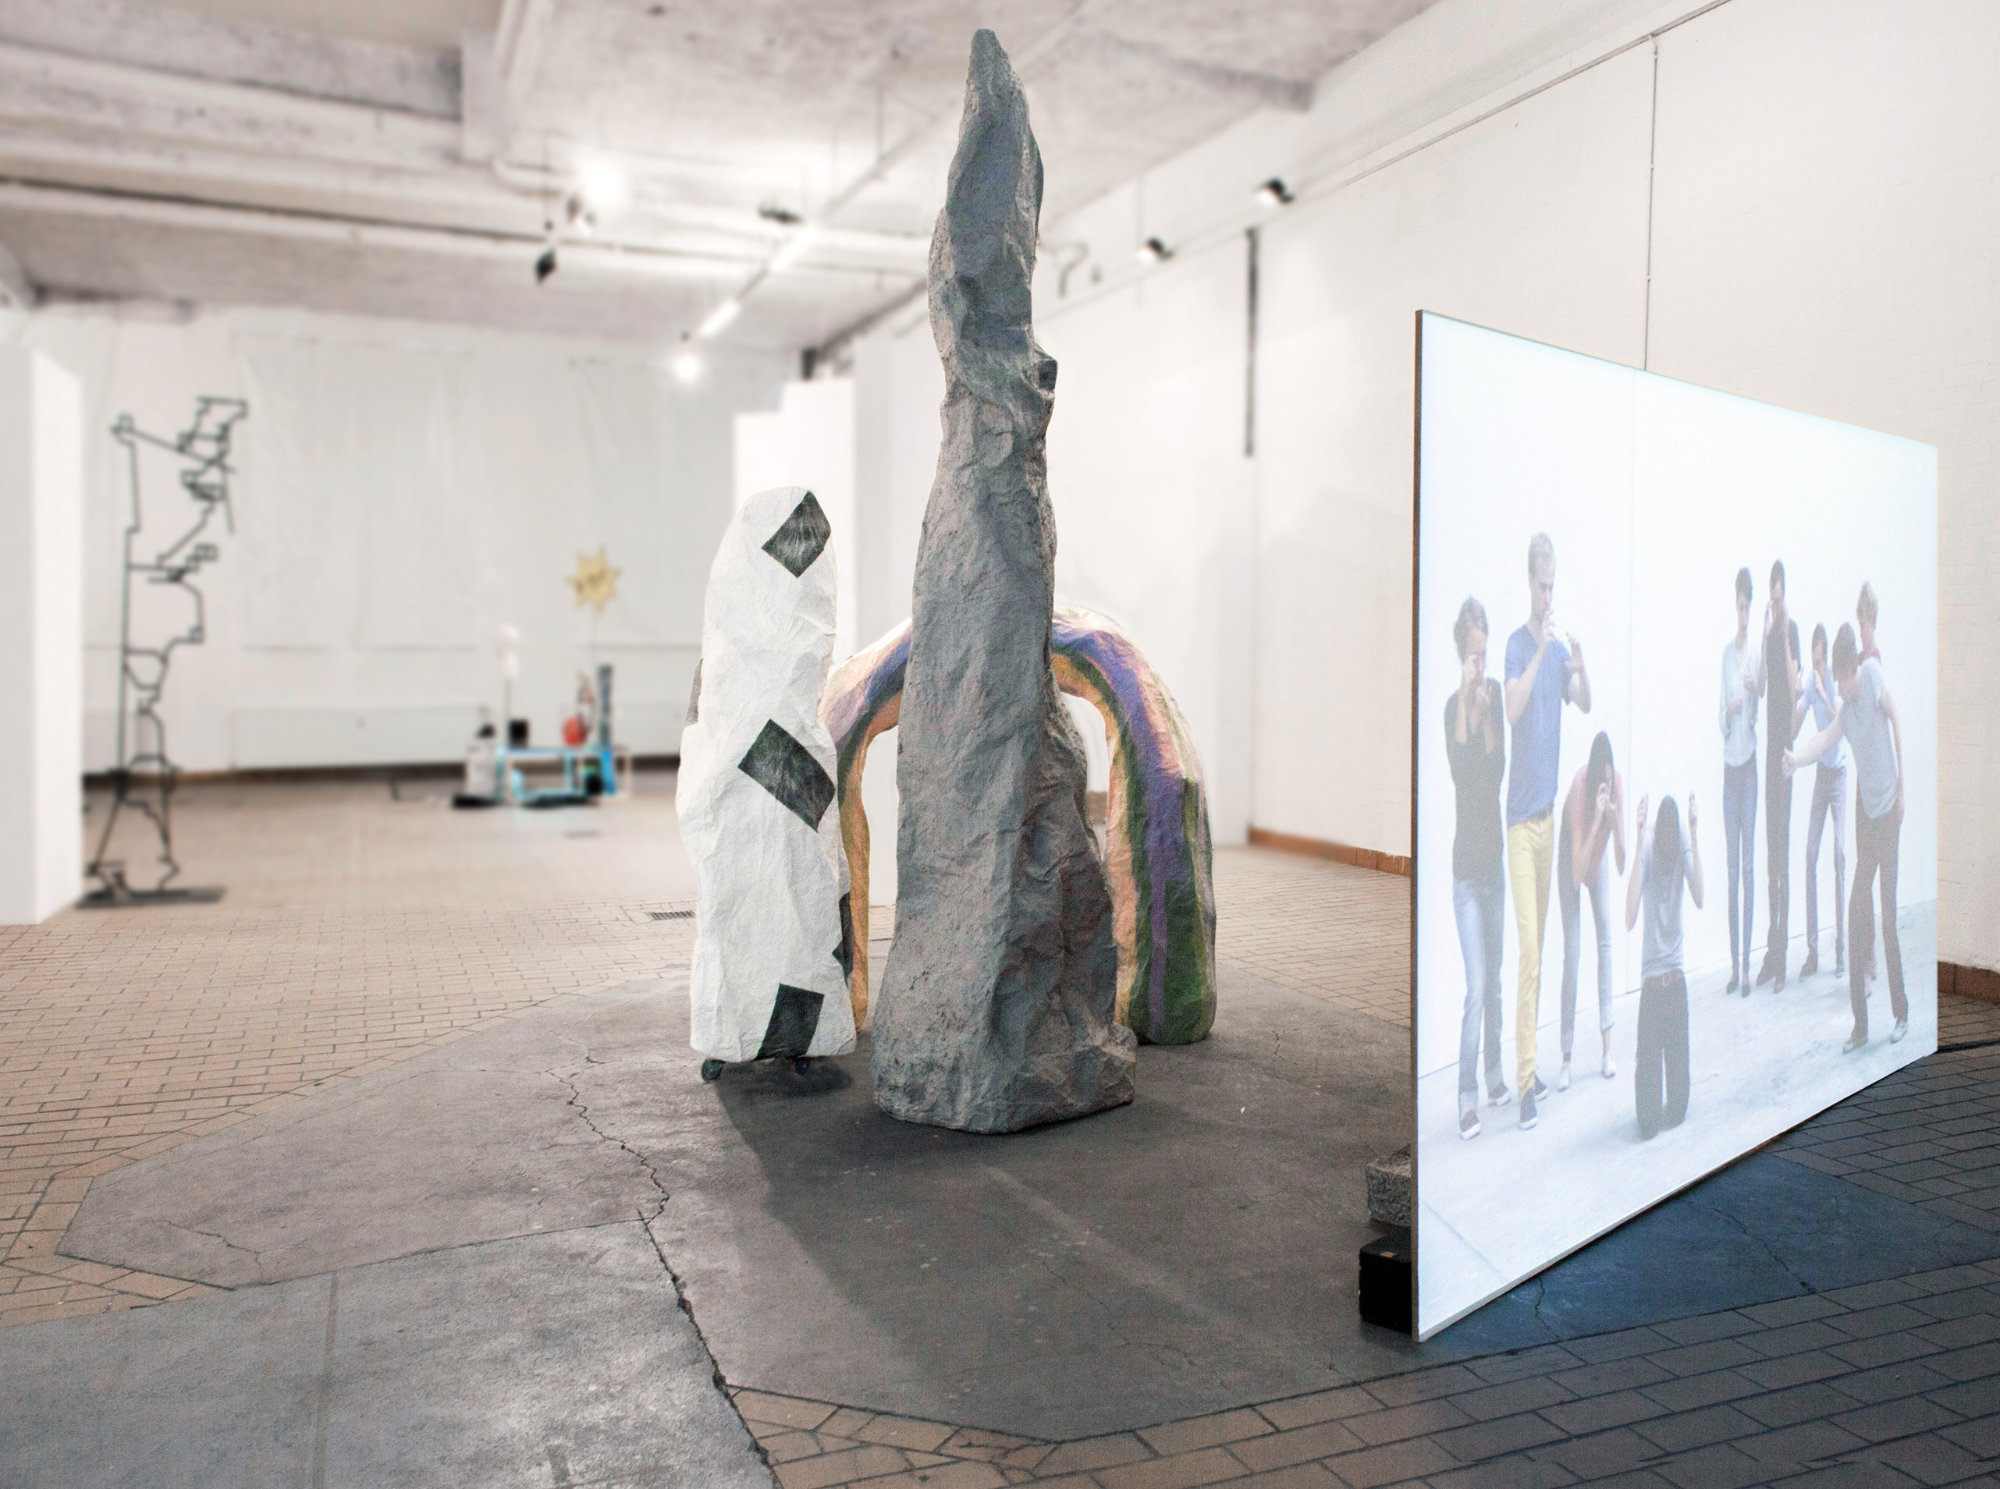 <p>Exhibition view (left-right): Dan Stockholm, Julian Weber, Linda Kuhn, Yvon Chabrowksi</p>